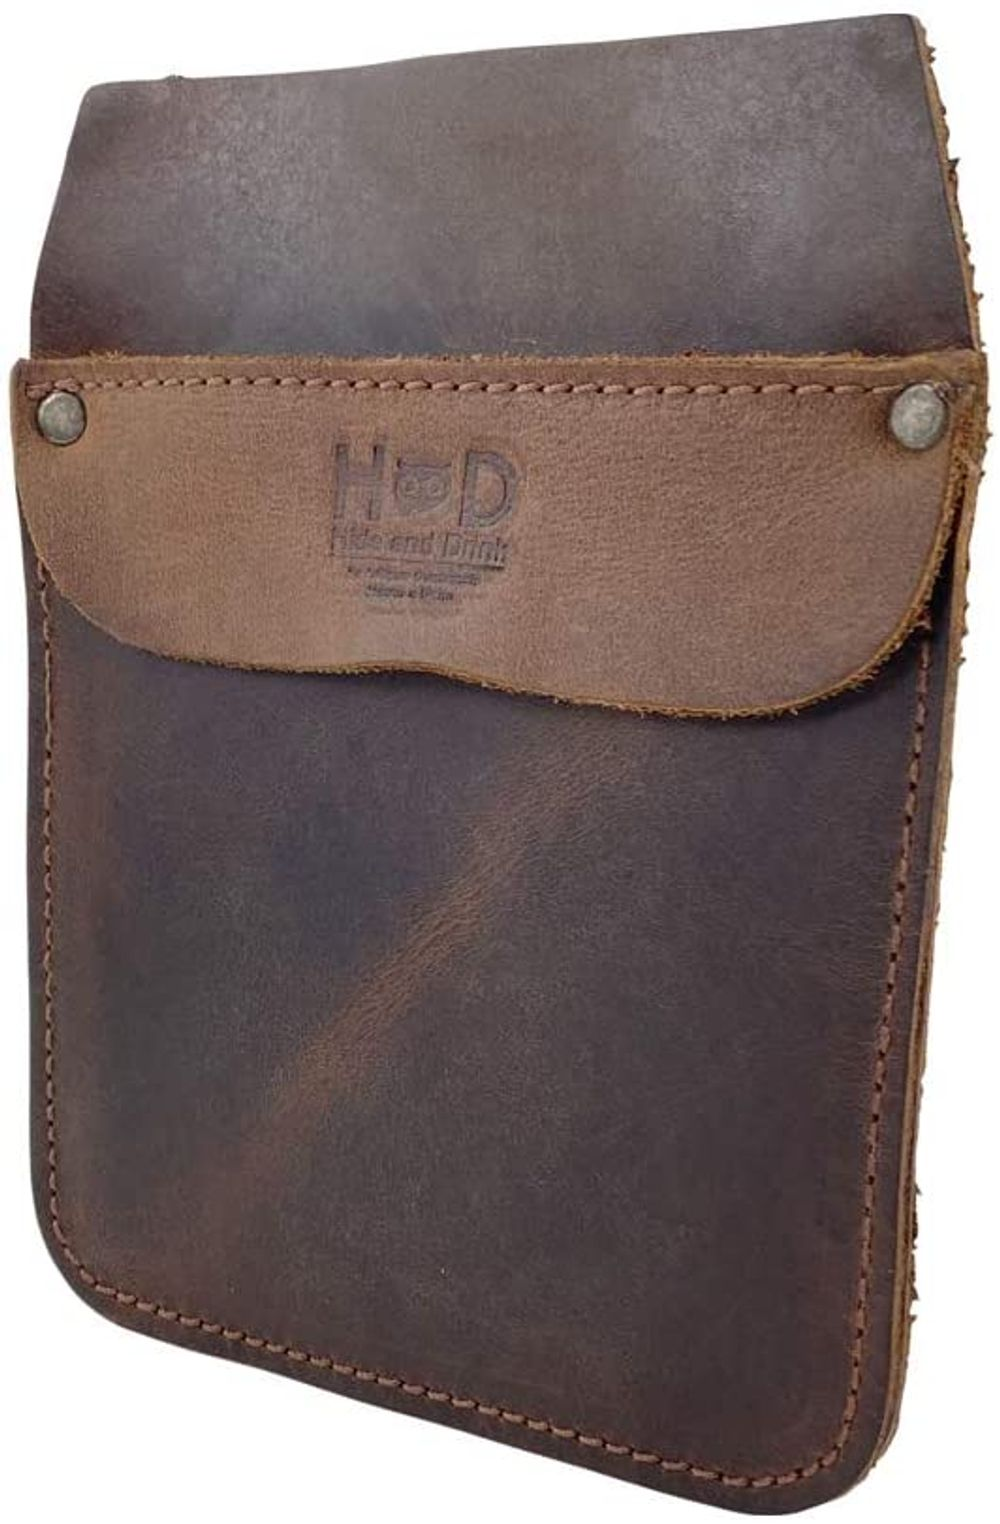 Hide & Drink, Durable Leather Work Pocket Organizer for Tools / Pens, Jeans Back Pocket Quick Grab Carry Job Tools, Office & Work Essentials Handmade Includes 101 Year Warranty :: Bourbon Brown